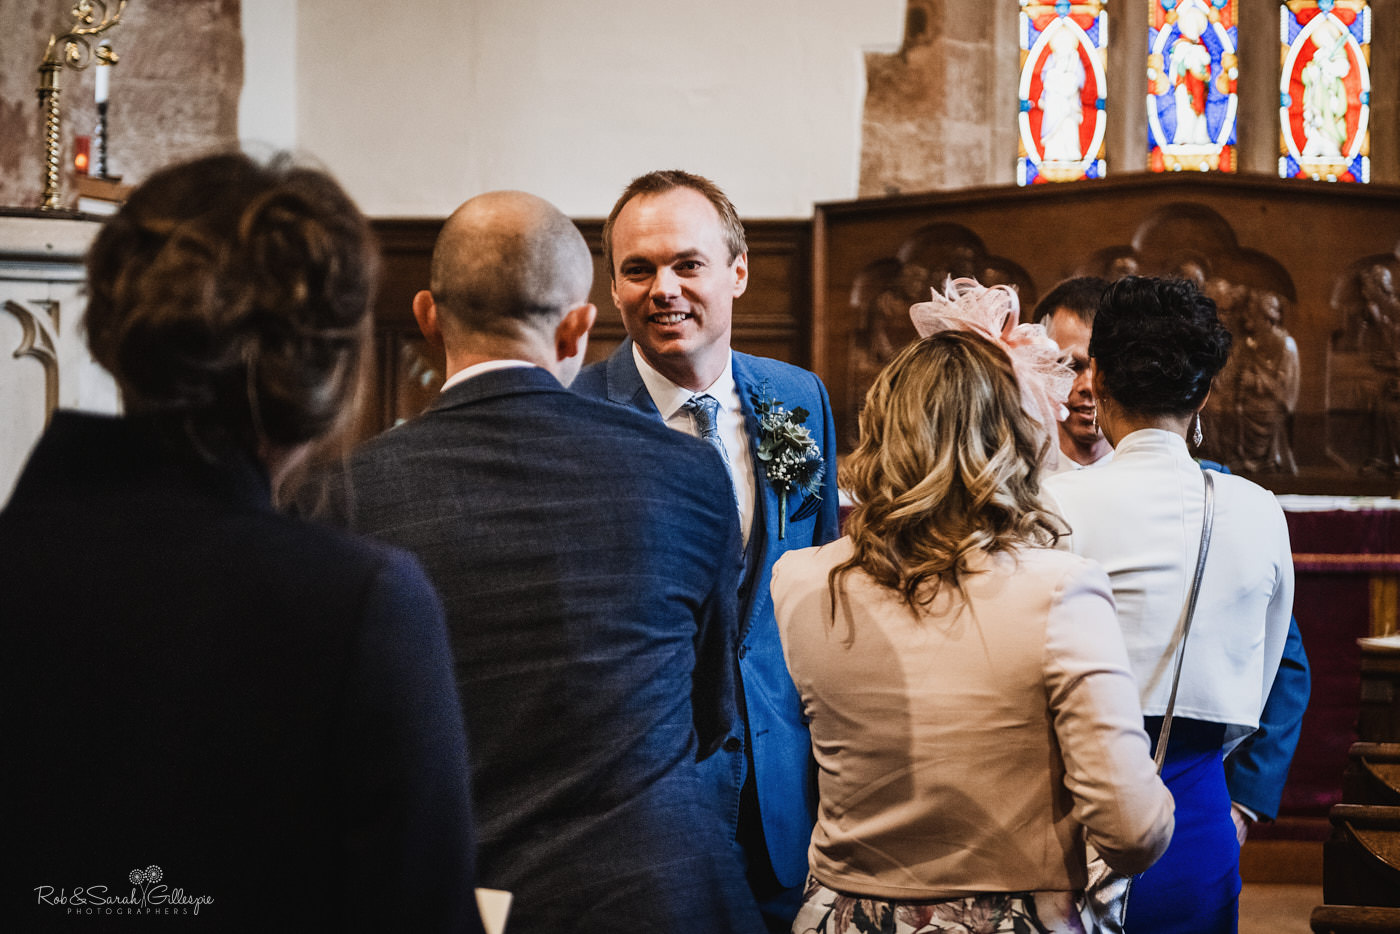 Groom greets wedding guests at St Kenelm church in Worcestershire